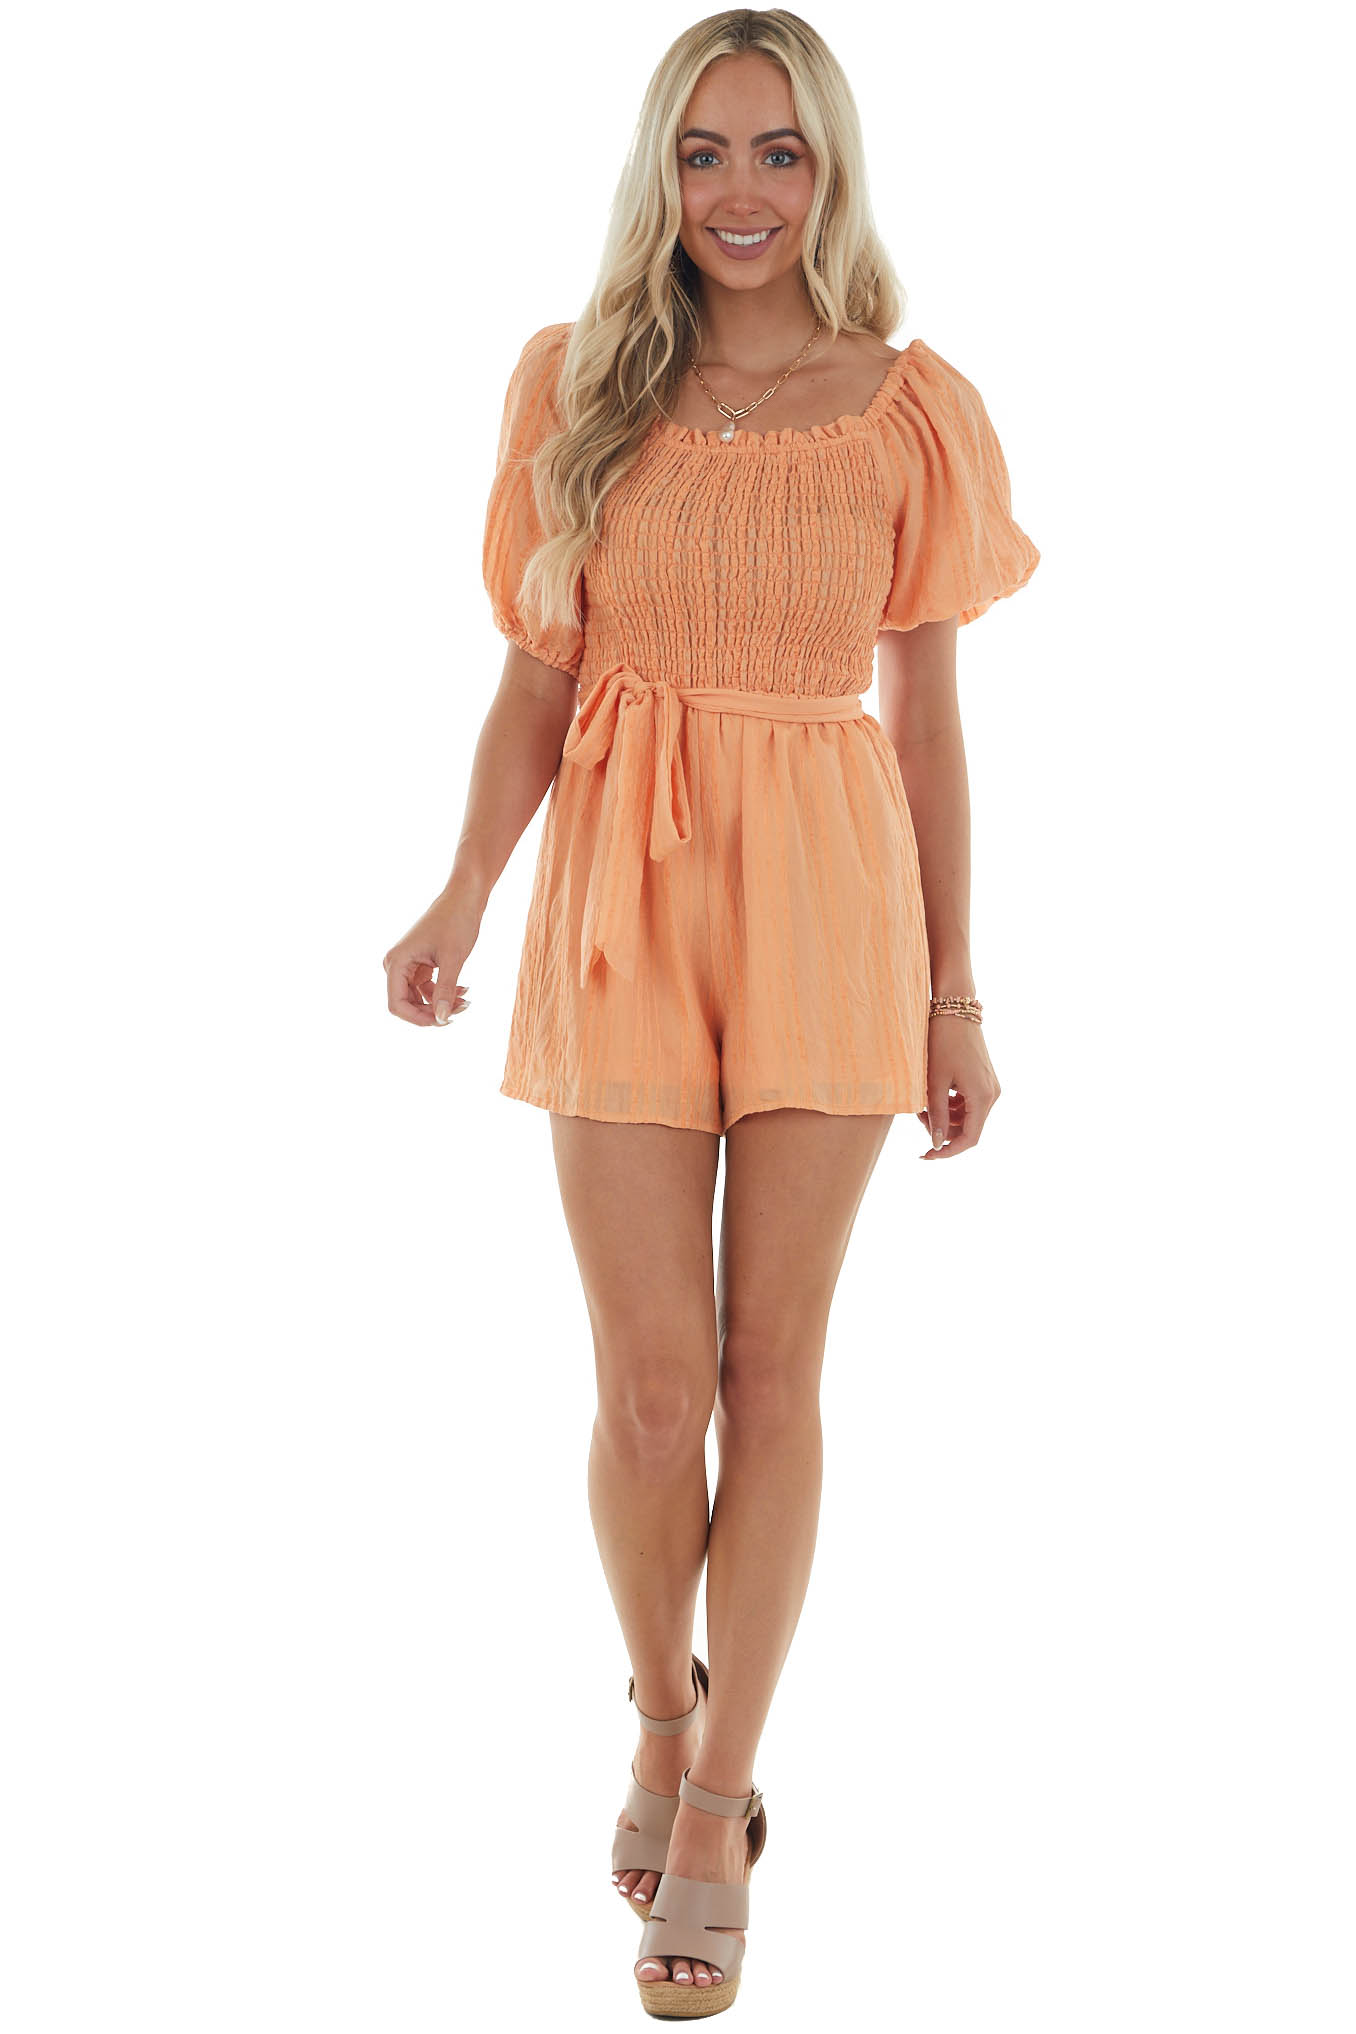 Melon Textured Romper with Short Puff Sleeves